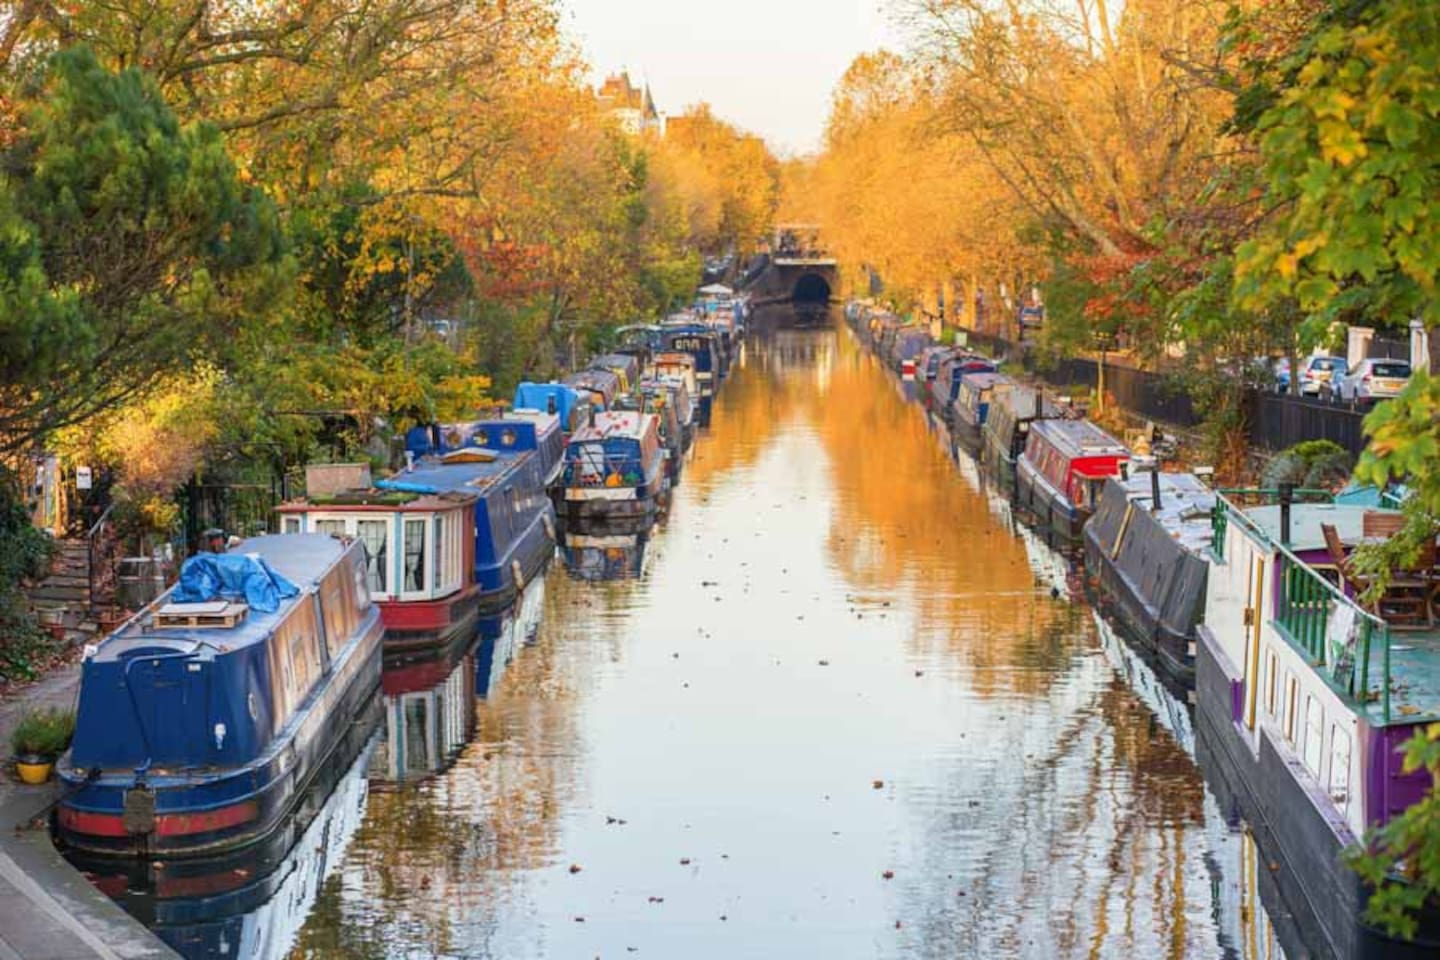 Little Venice canals - just down the road